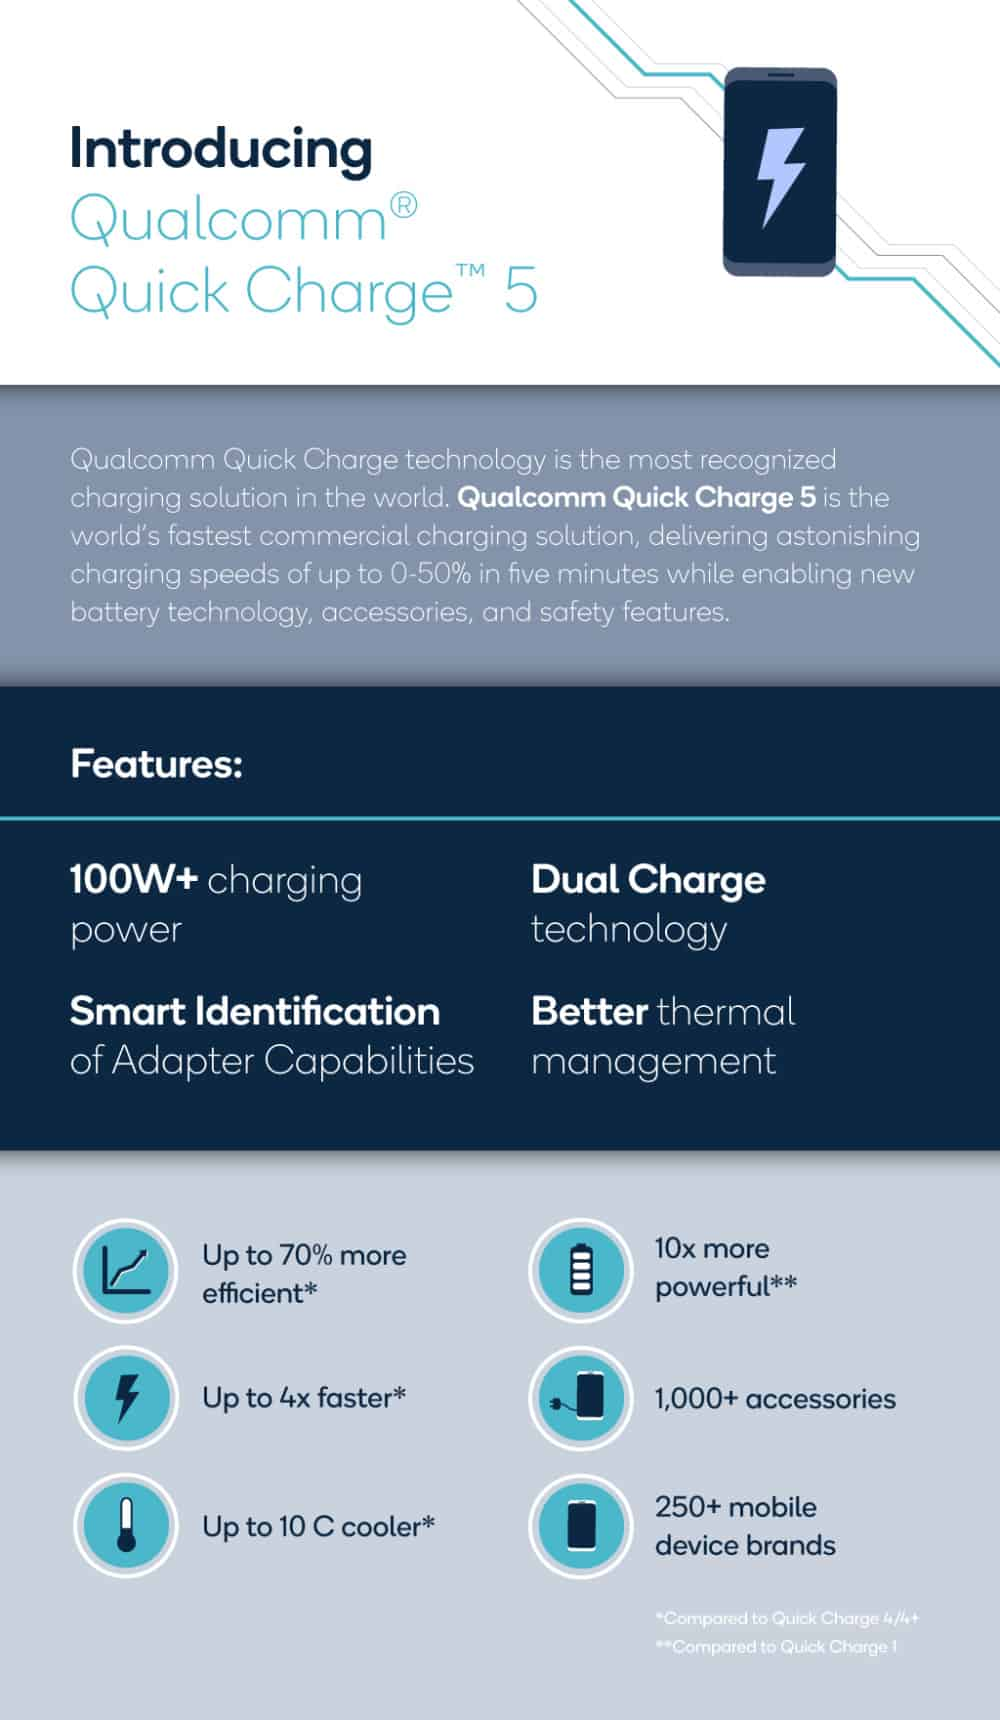 qualcomm-quick-charge-5-overview-features-speeds